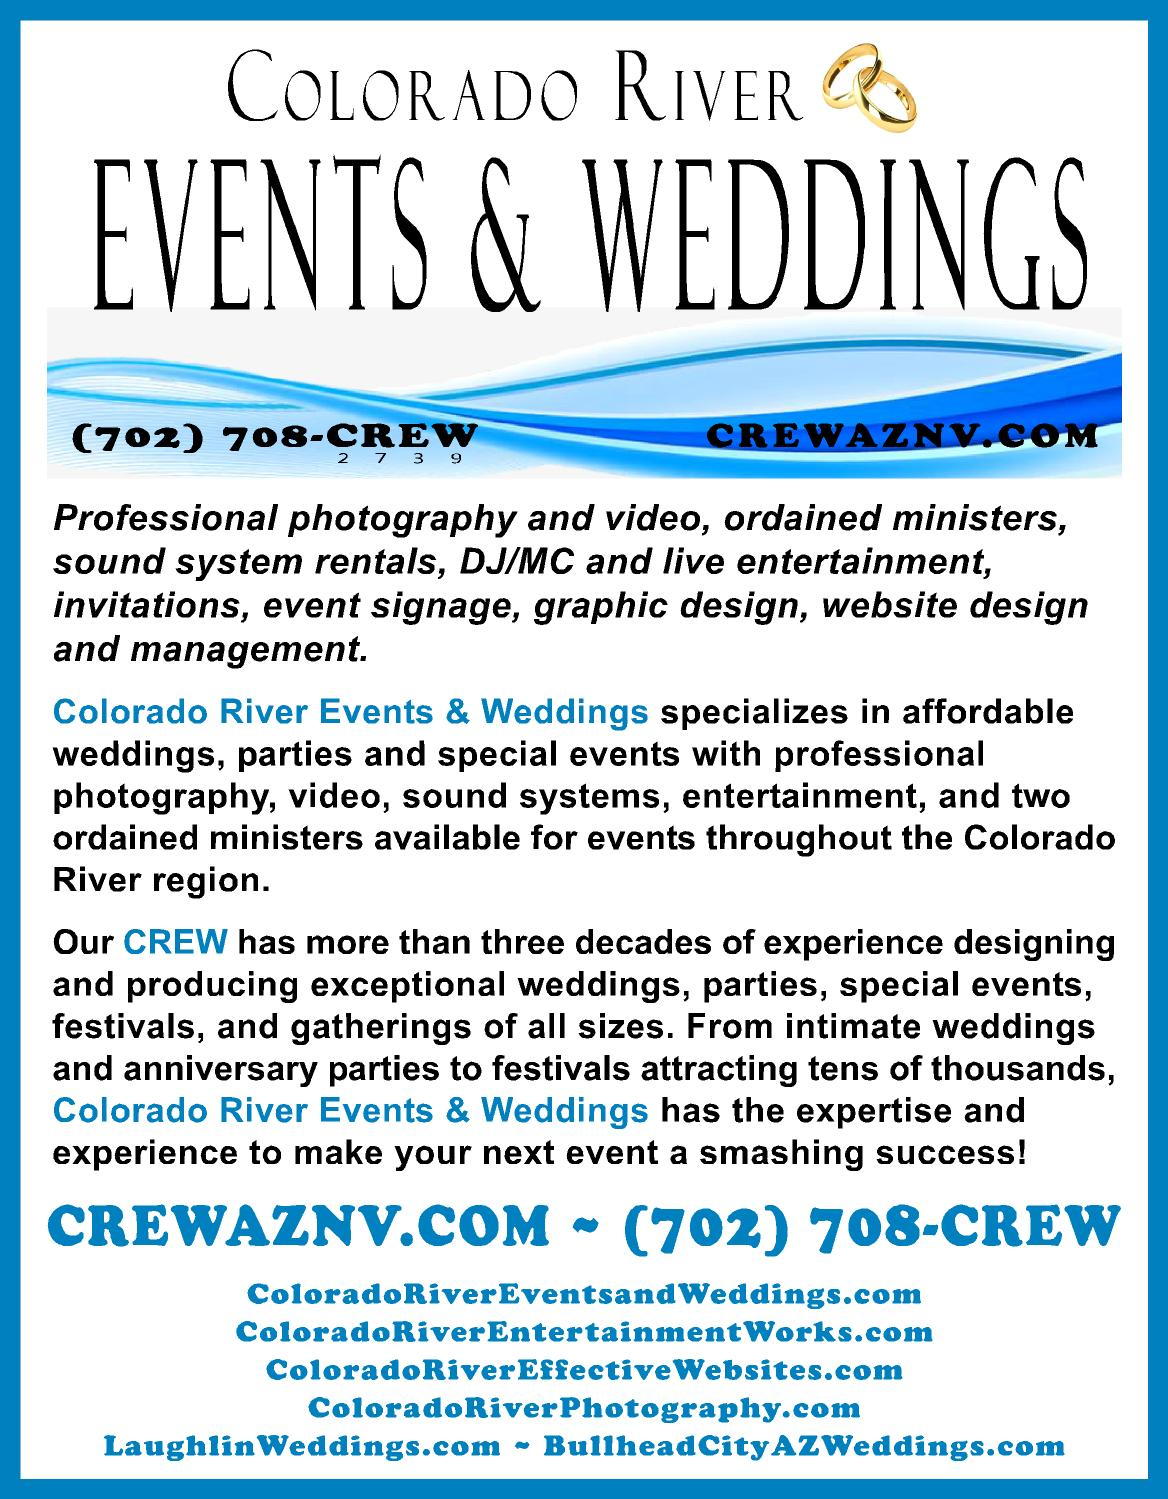 CREW's Many Services Listed Here